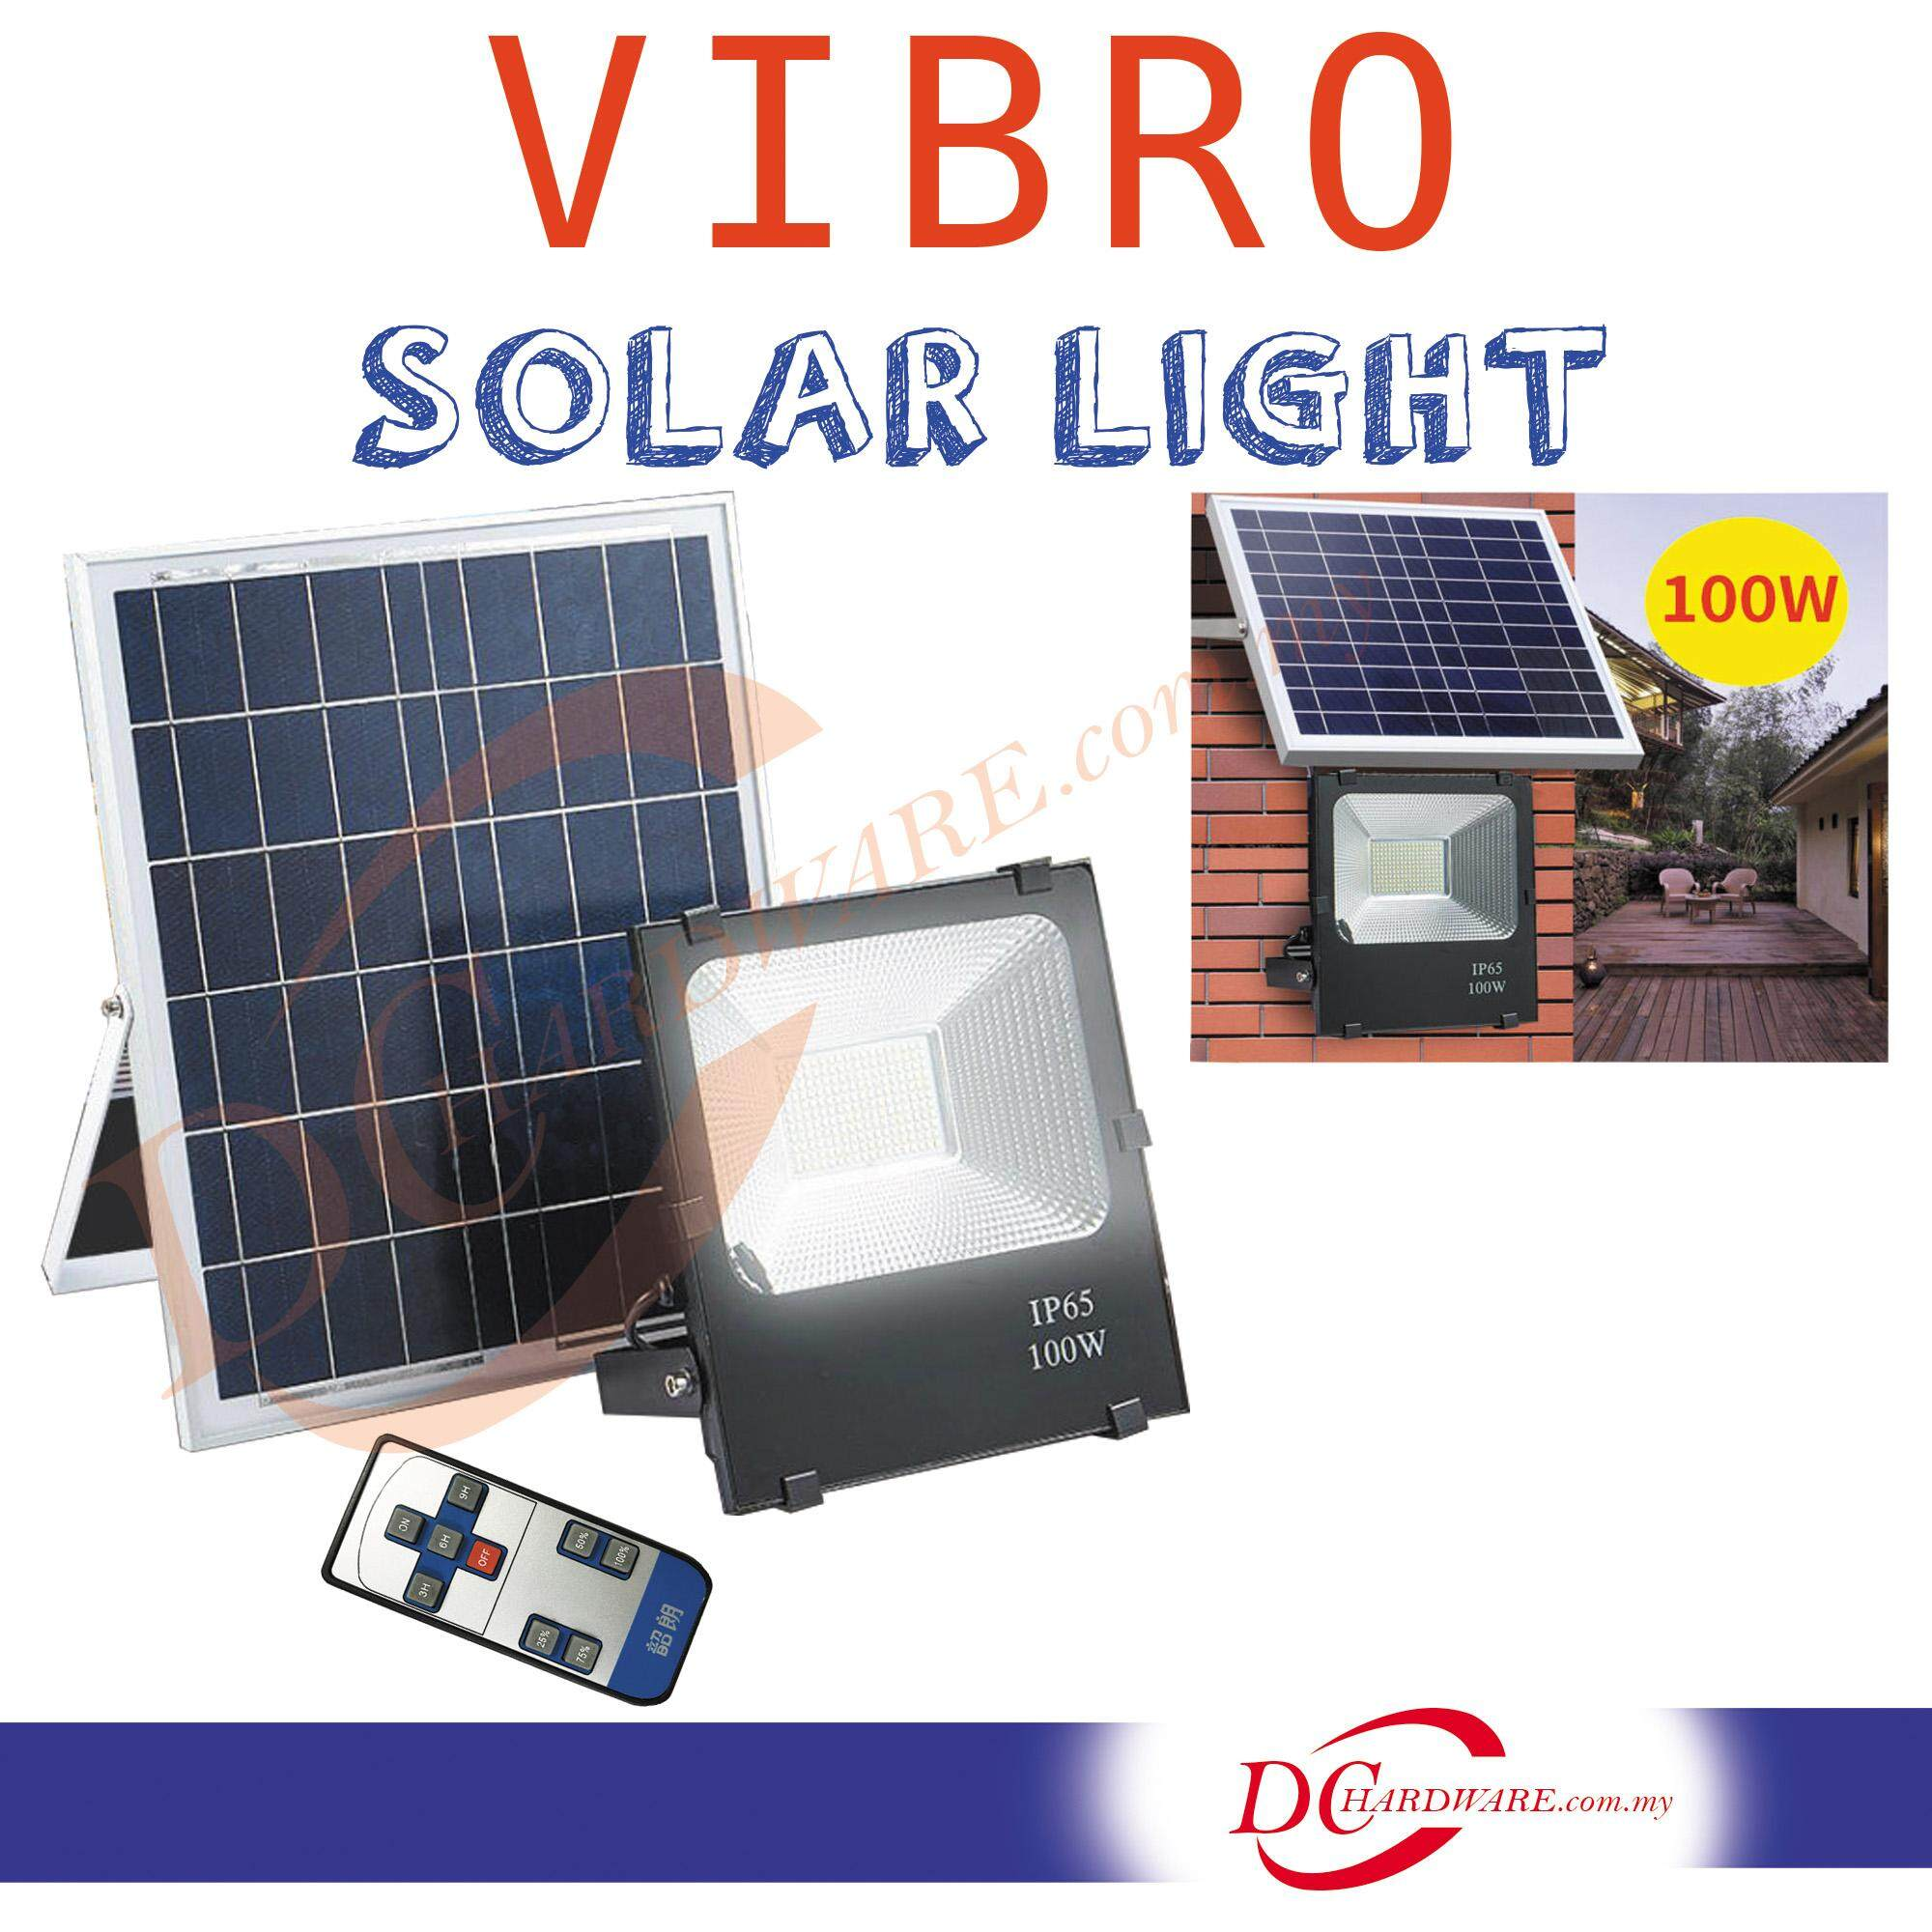 VIBRO 100W Solar Flood Lights Outdoor Waterprooof Super Bright LED with Remote Control (VIBRO-100LED)